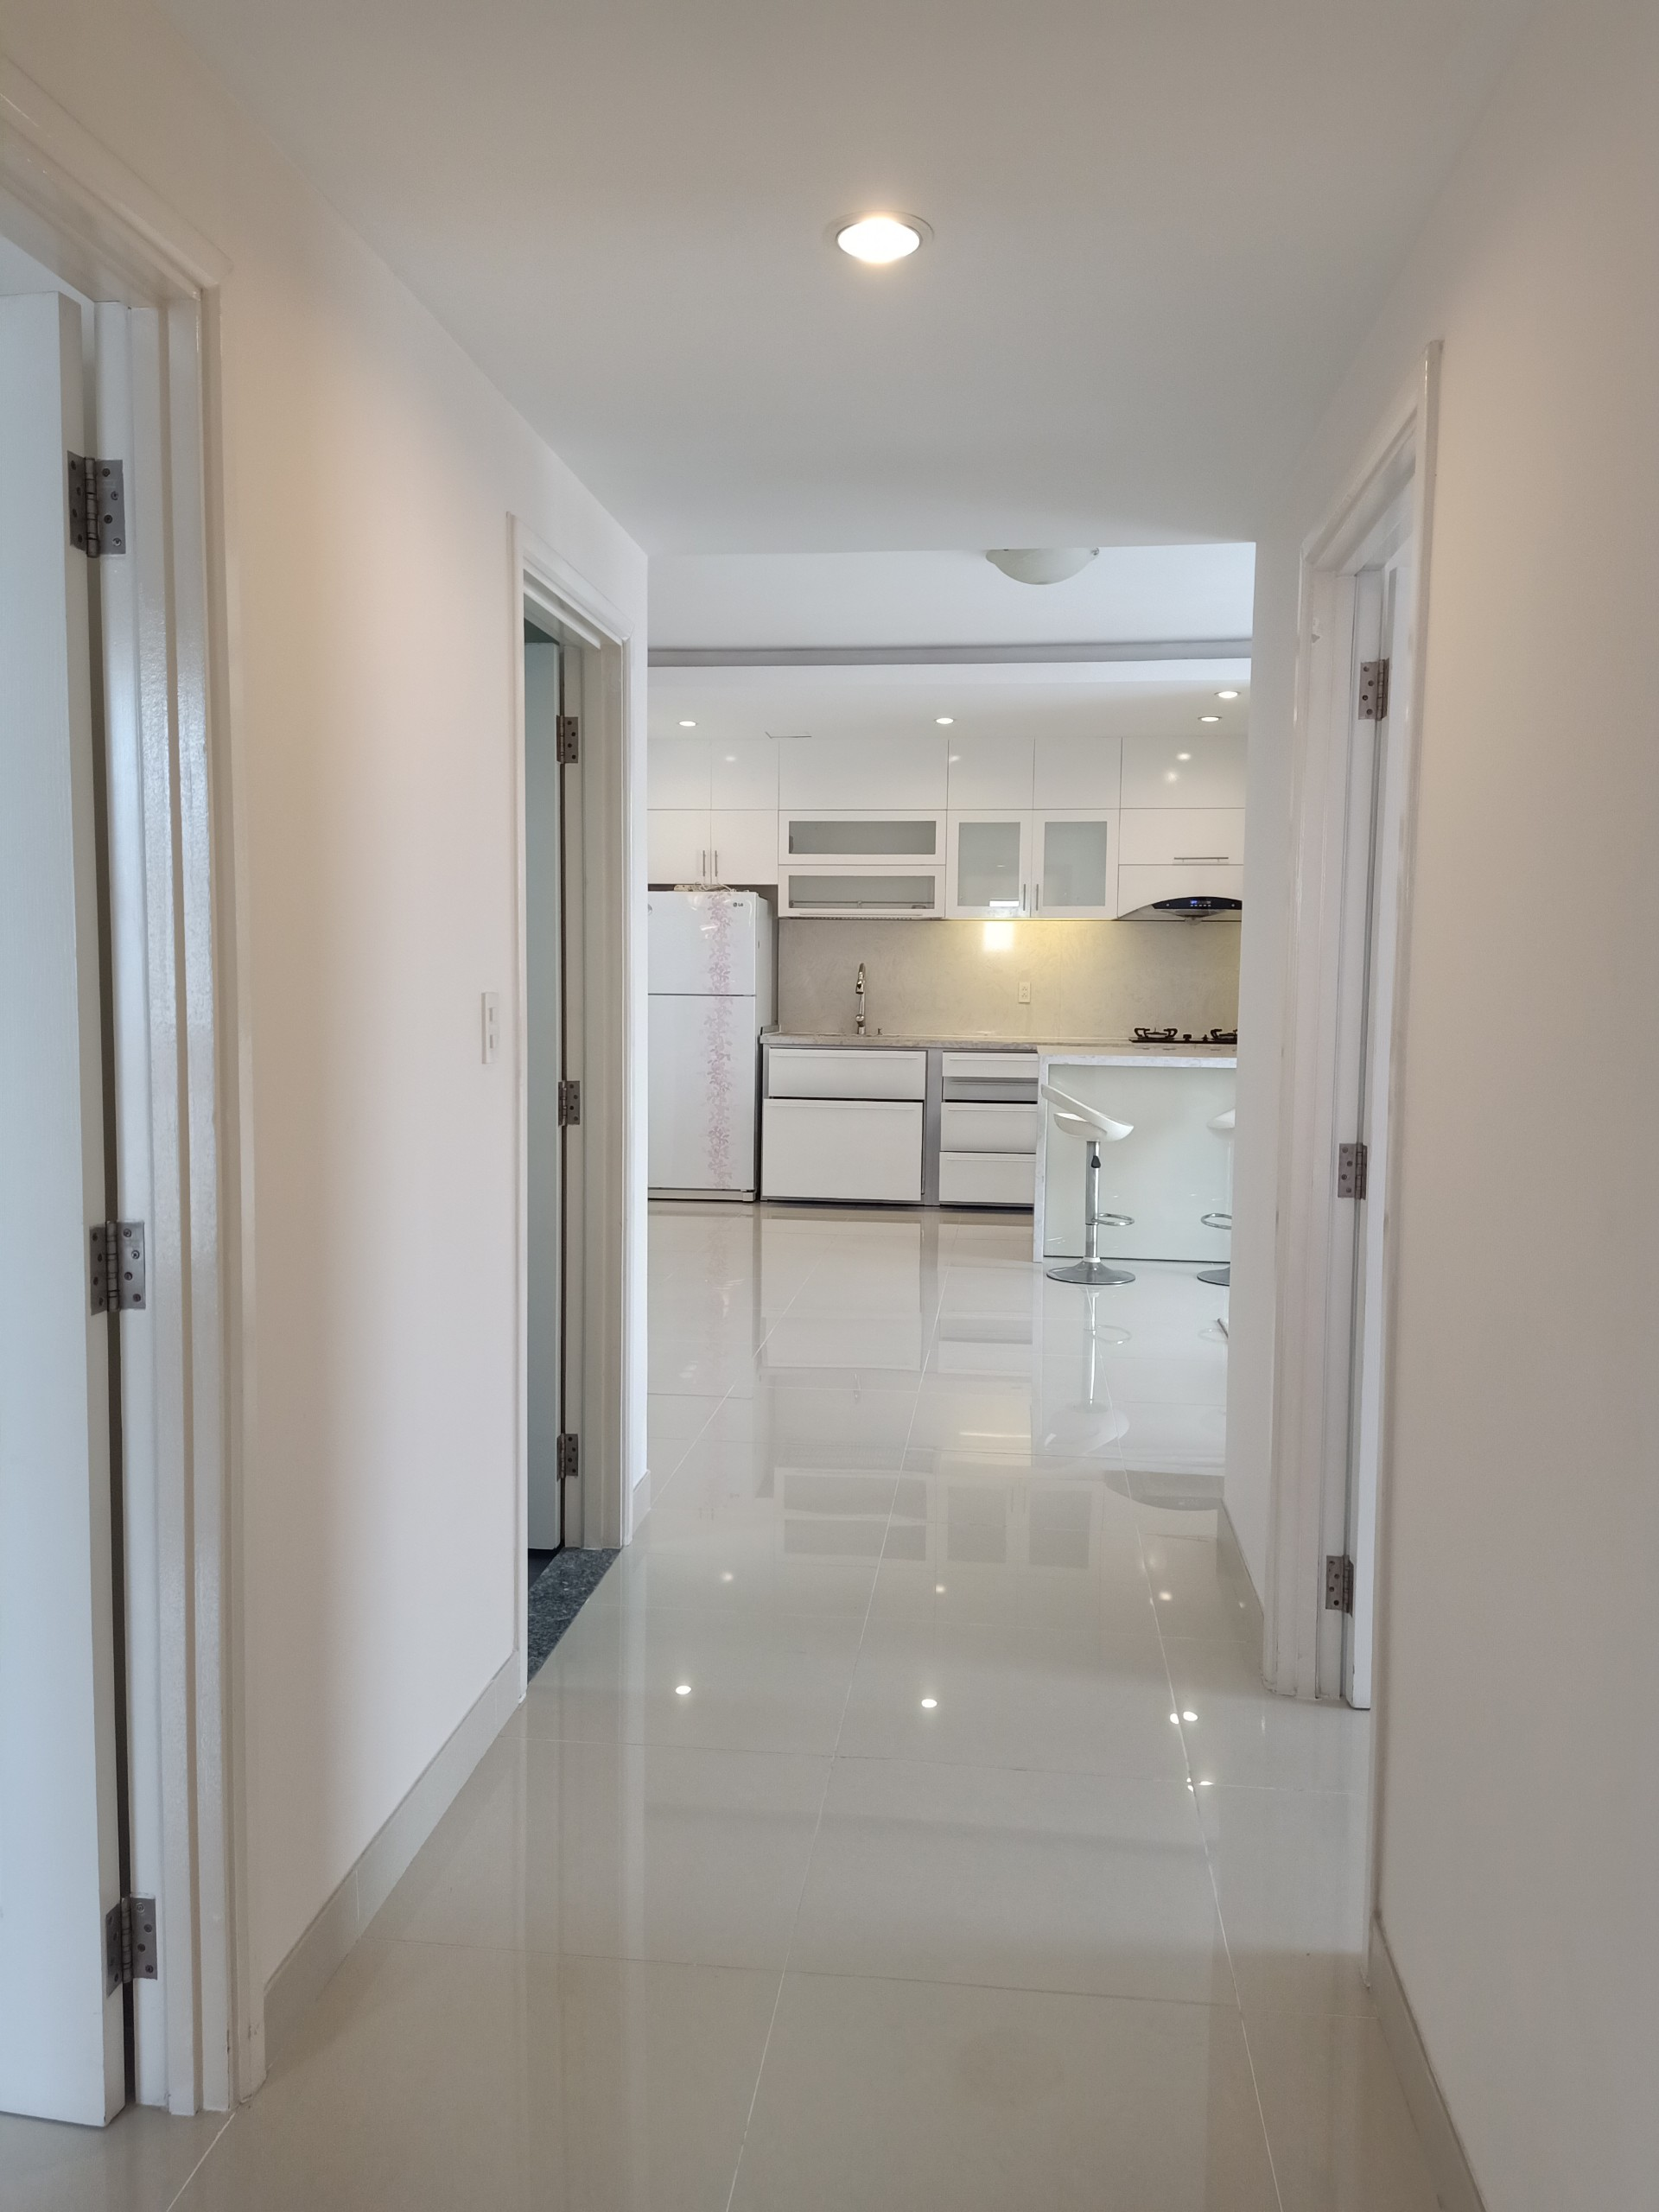 full-furniture-River-park-1-for-rent-in-phu-my-hung